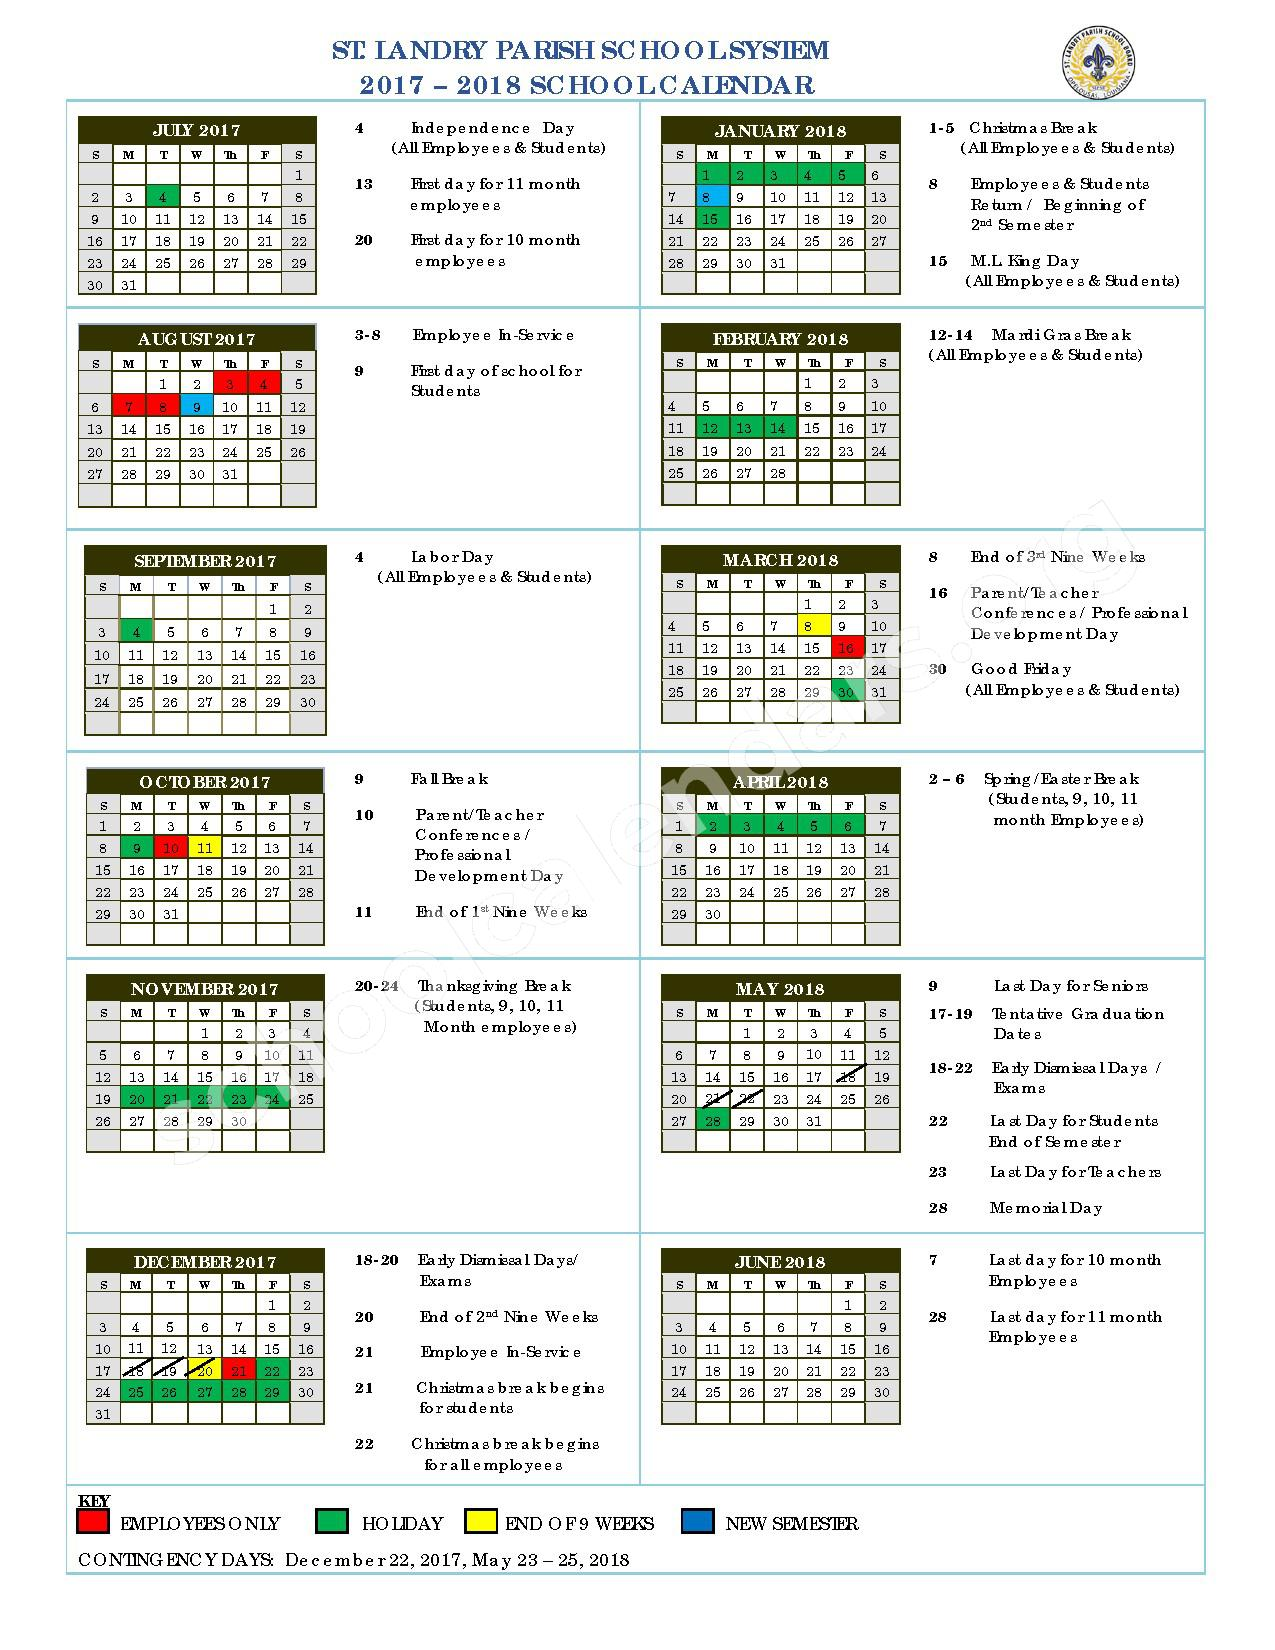 2017 - 2018 Academic Calendar – North Elementary School – page 1